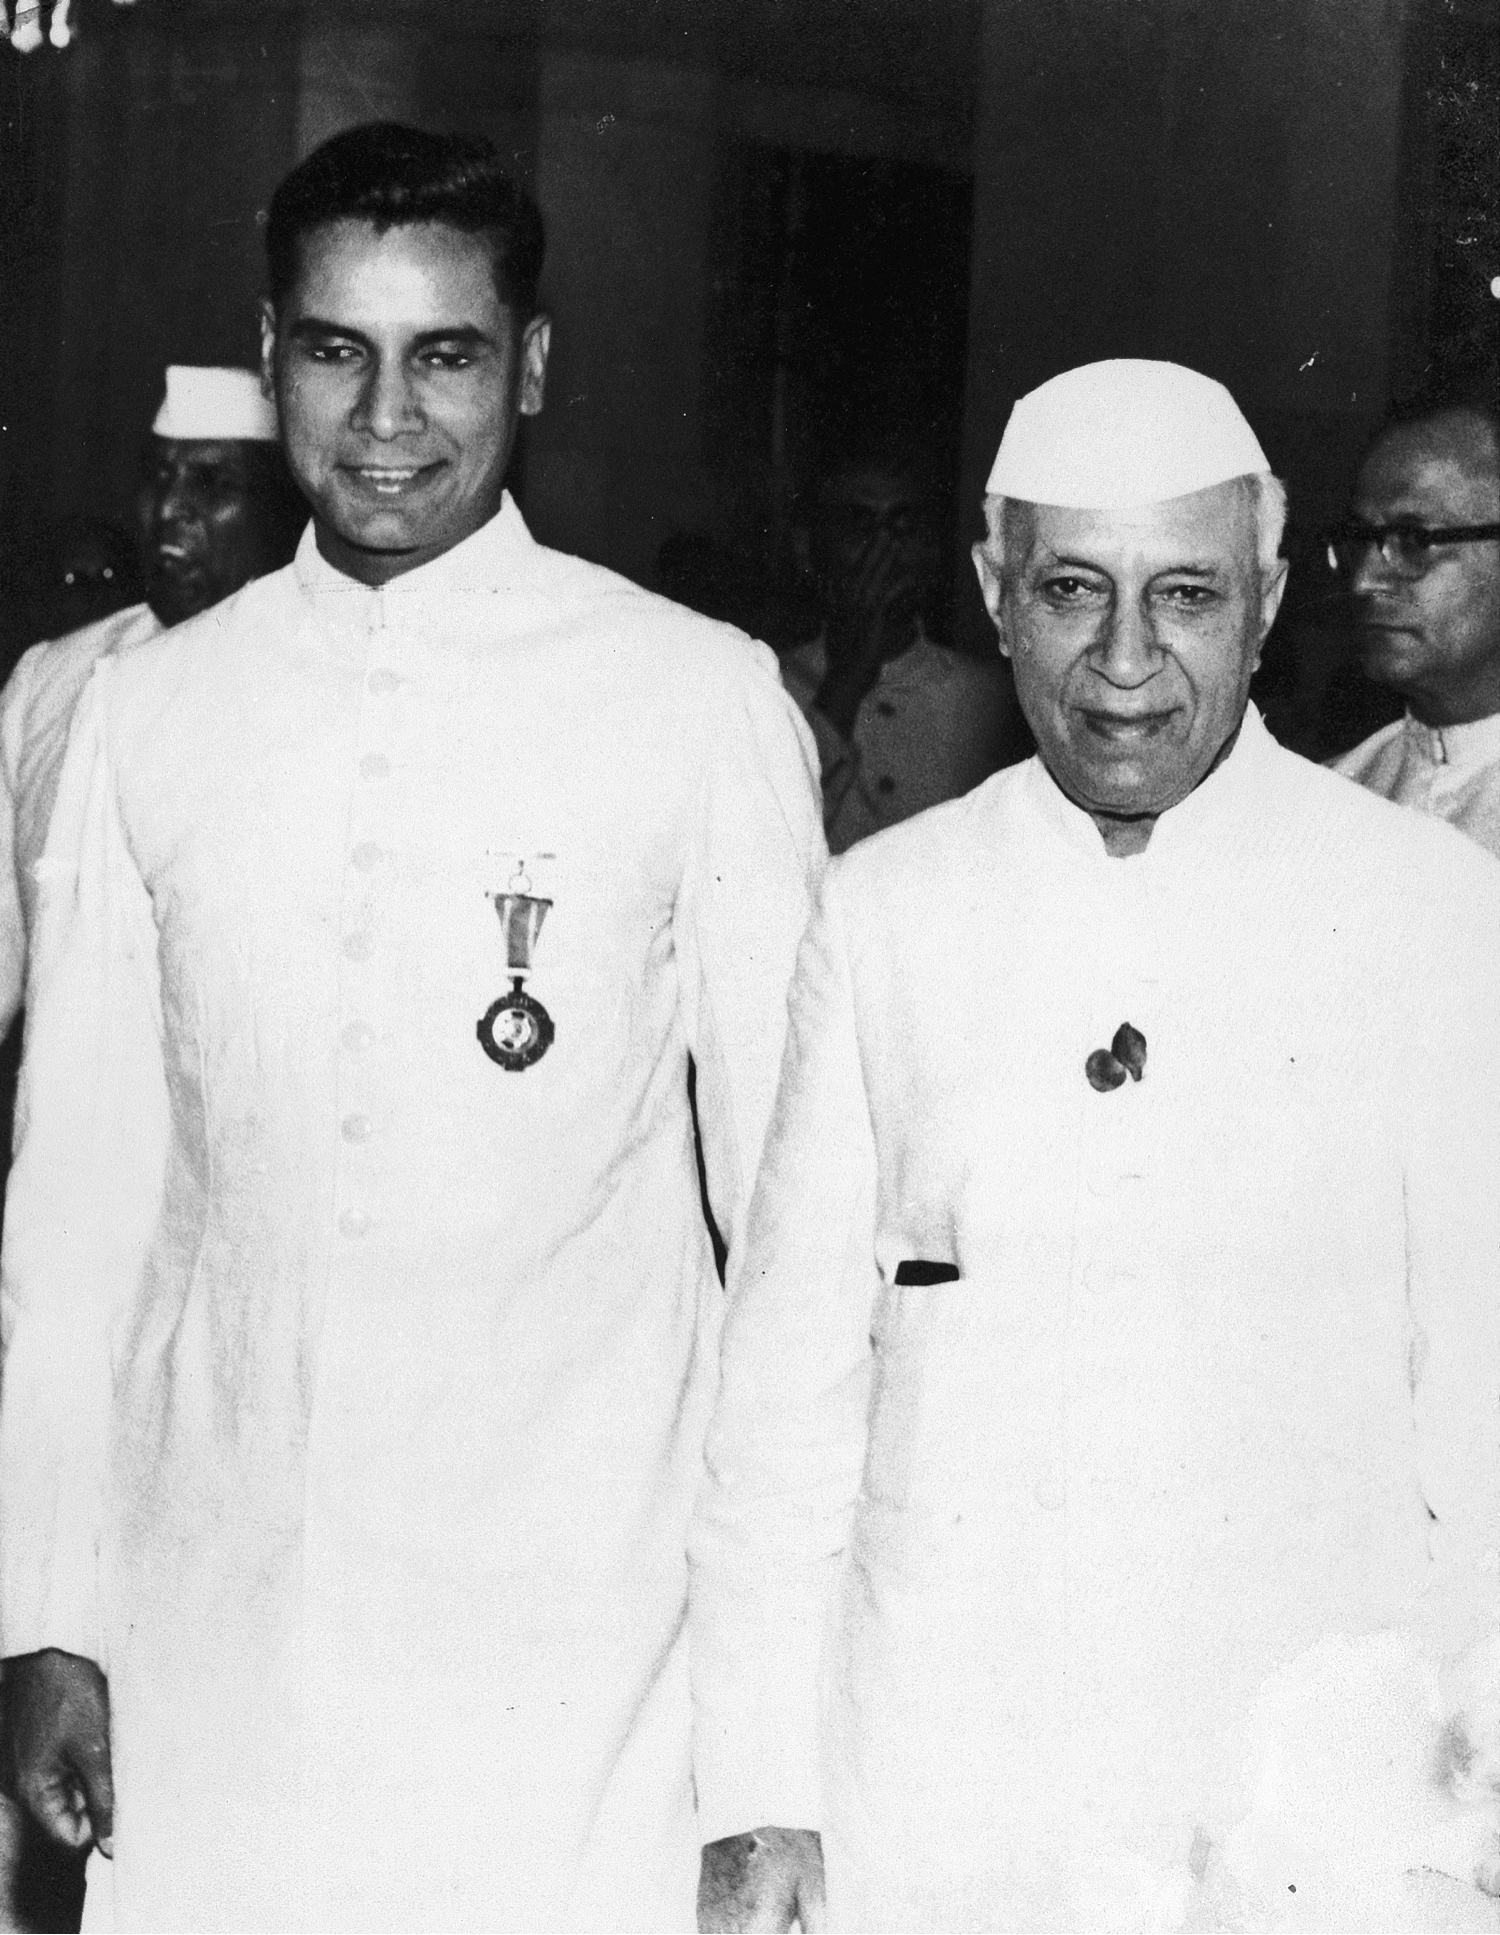 KC and Nehru at the Padma award ceremony, c. 1962